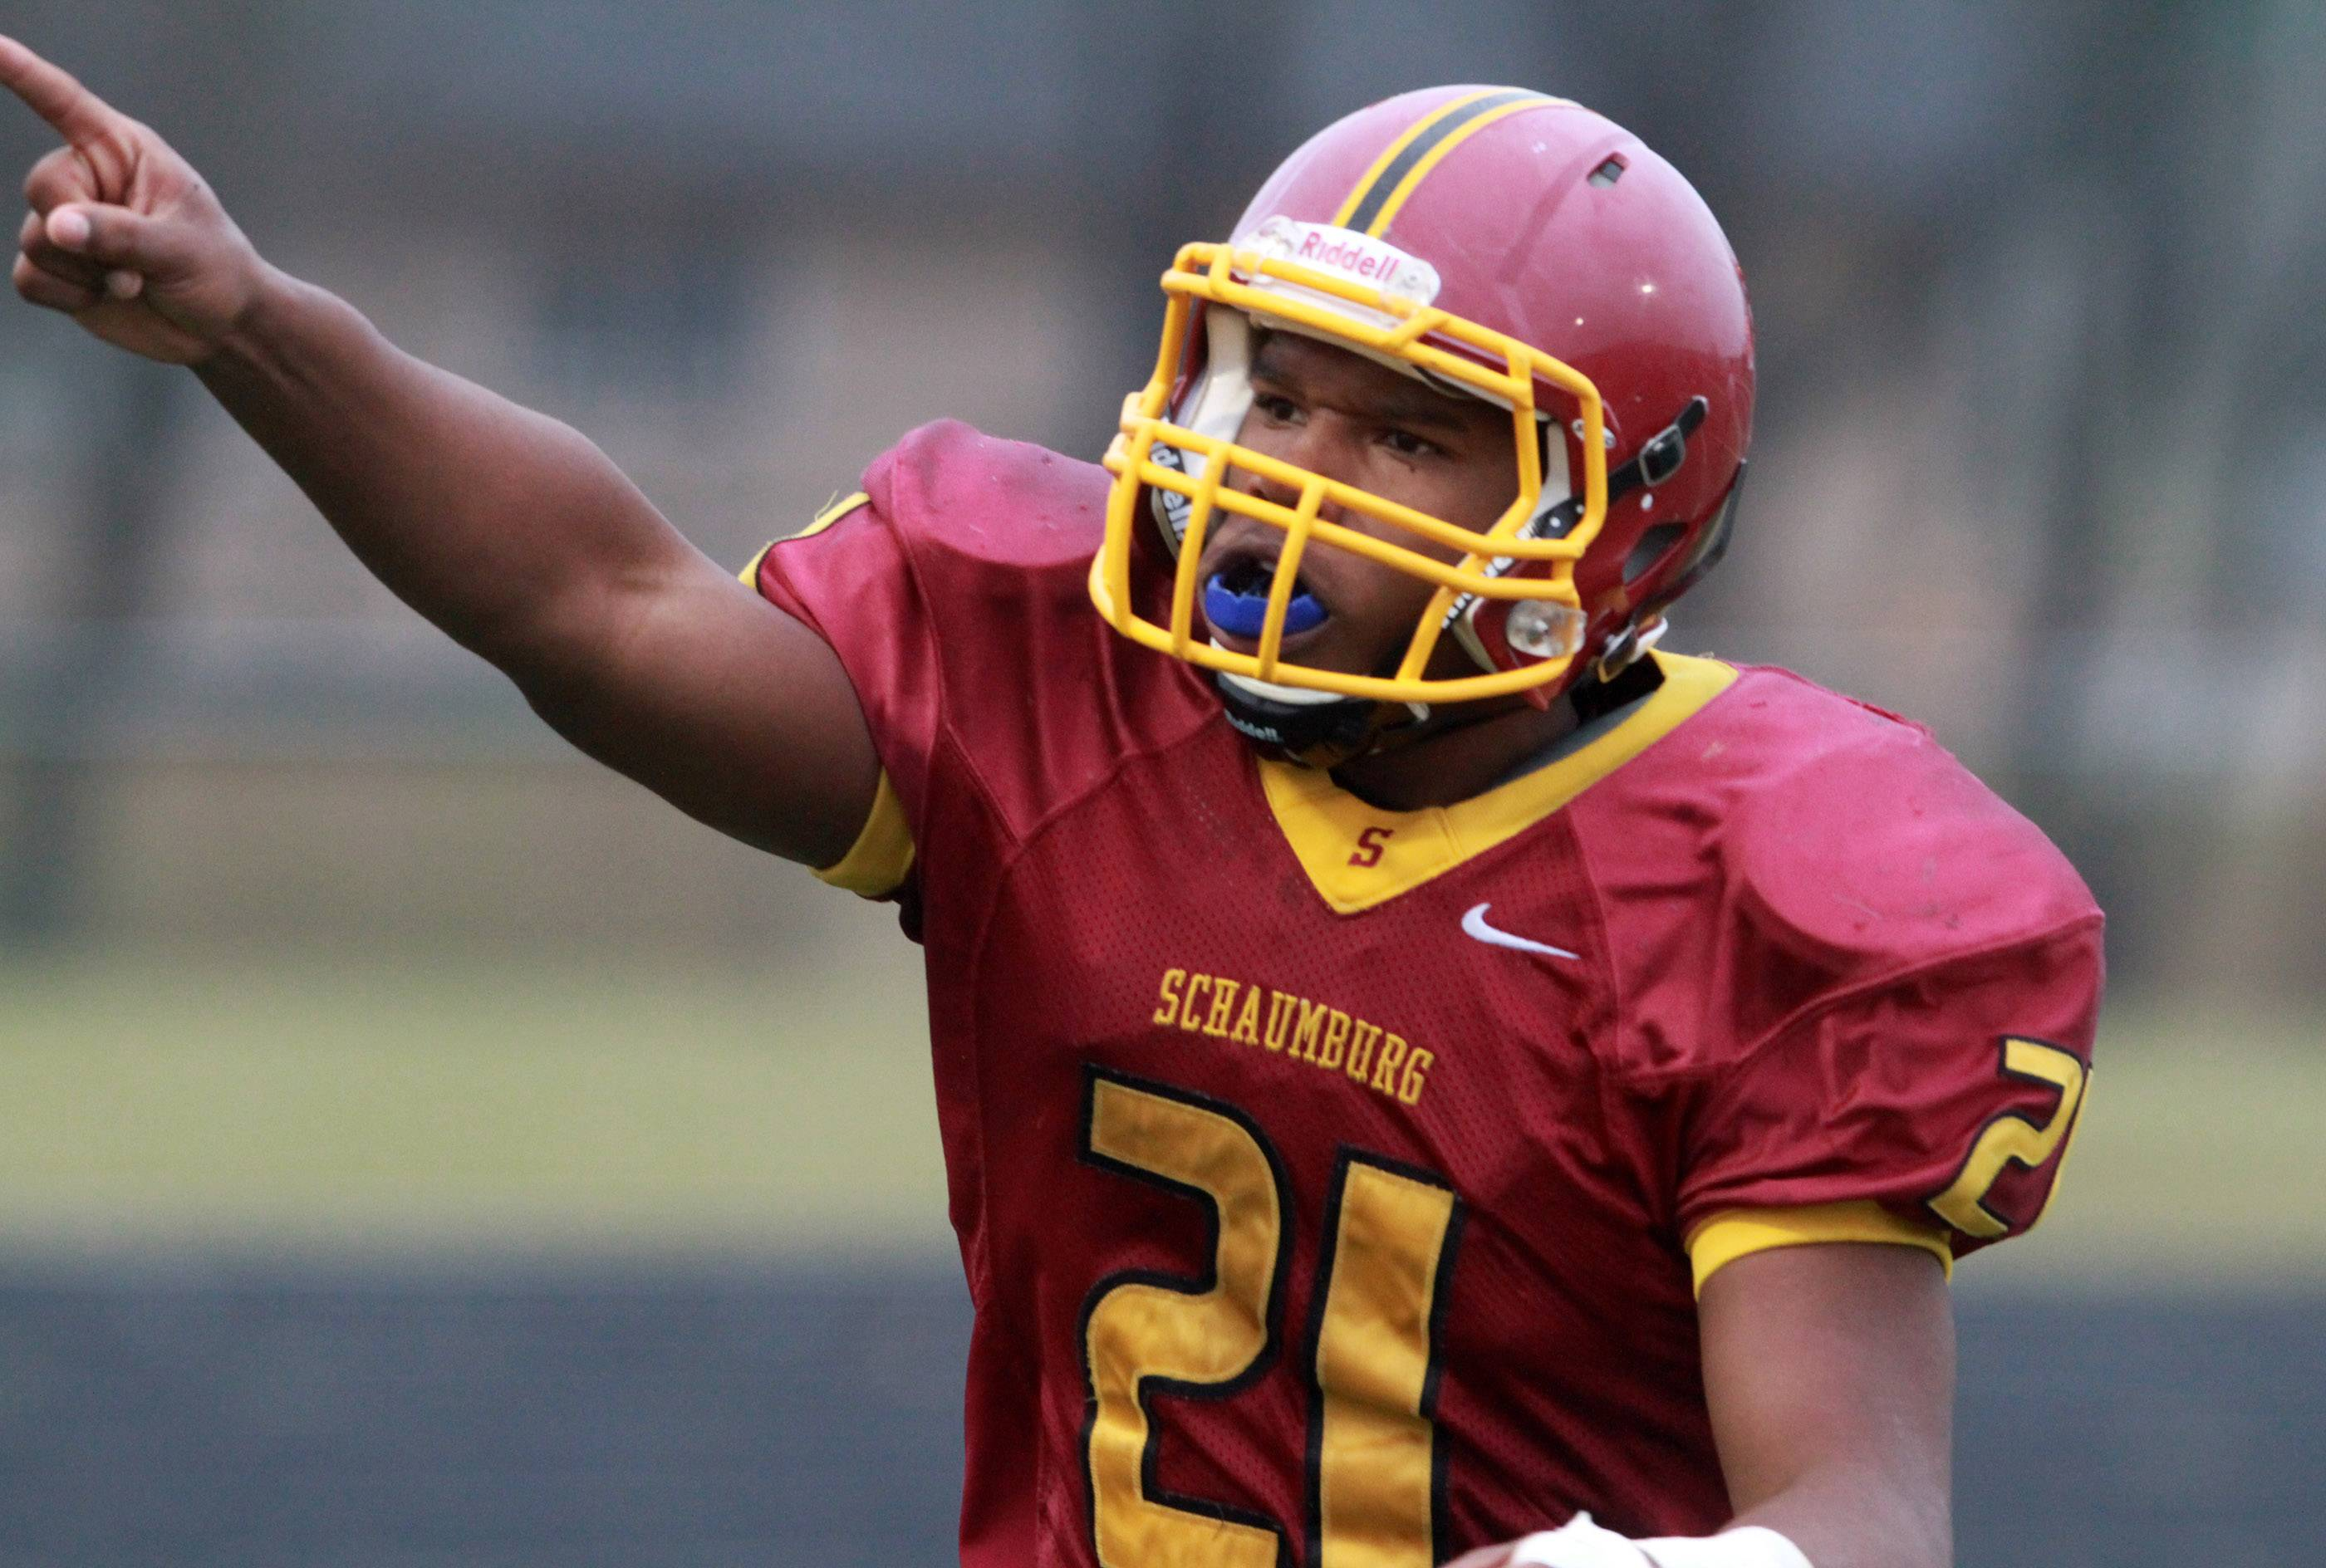 Schaumburg Justice Macneal-Young celebrates running for a touchdown against Glenbard West in last season's Class 7A state quarterfinals.